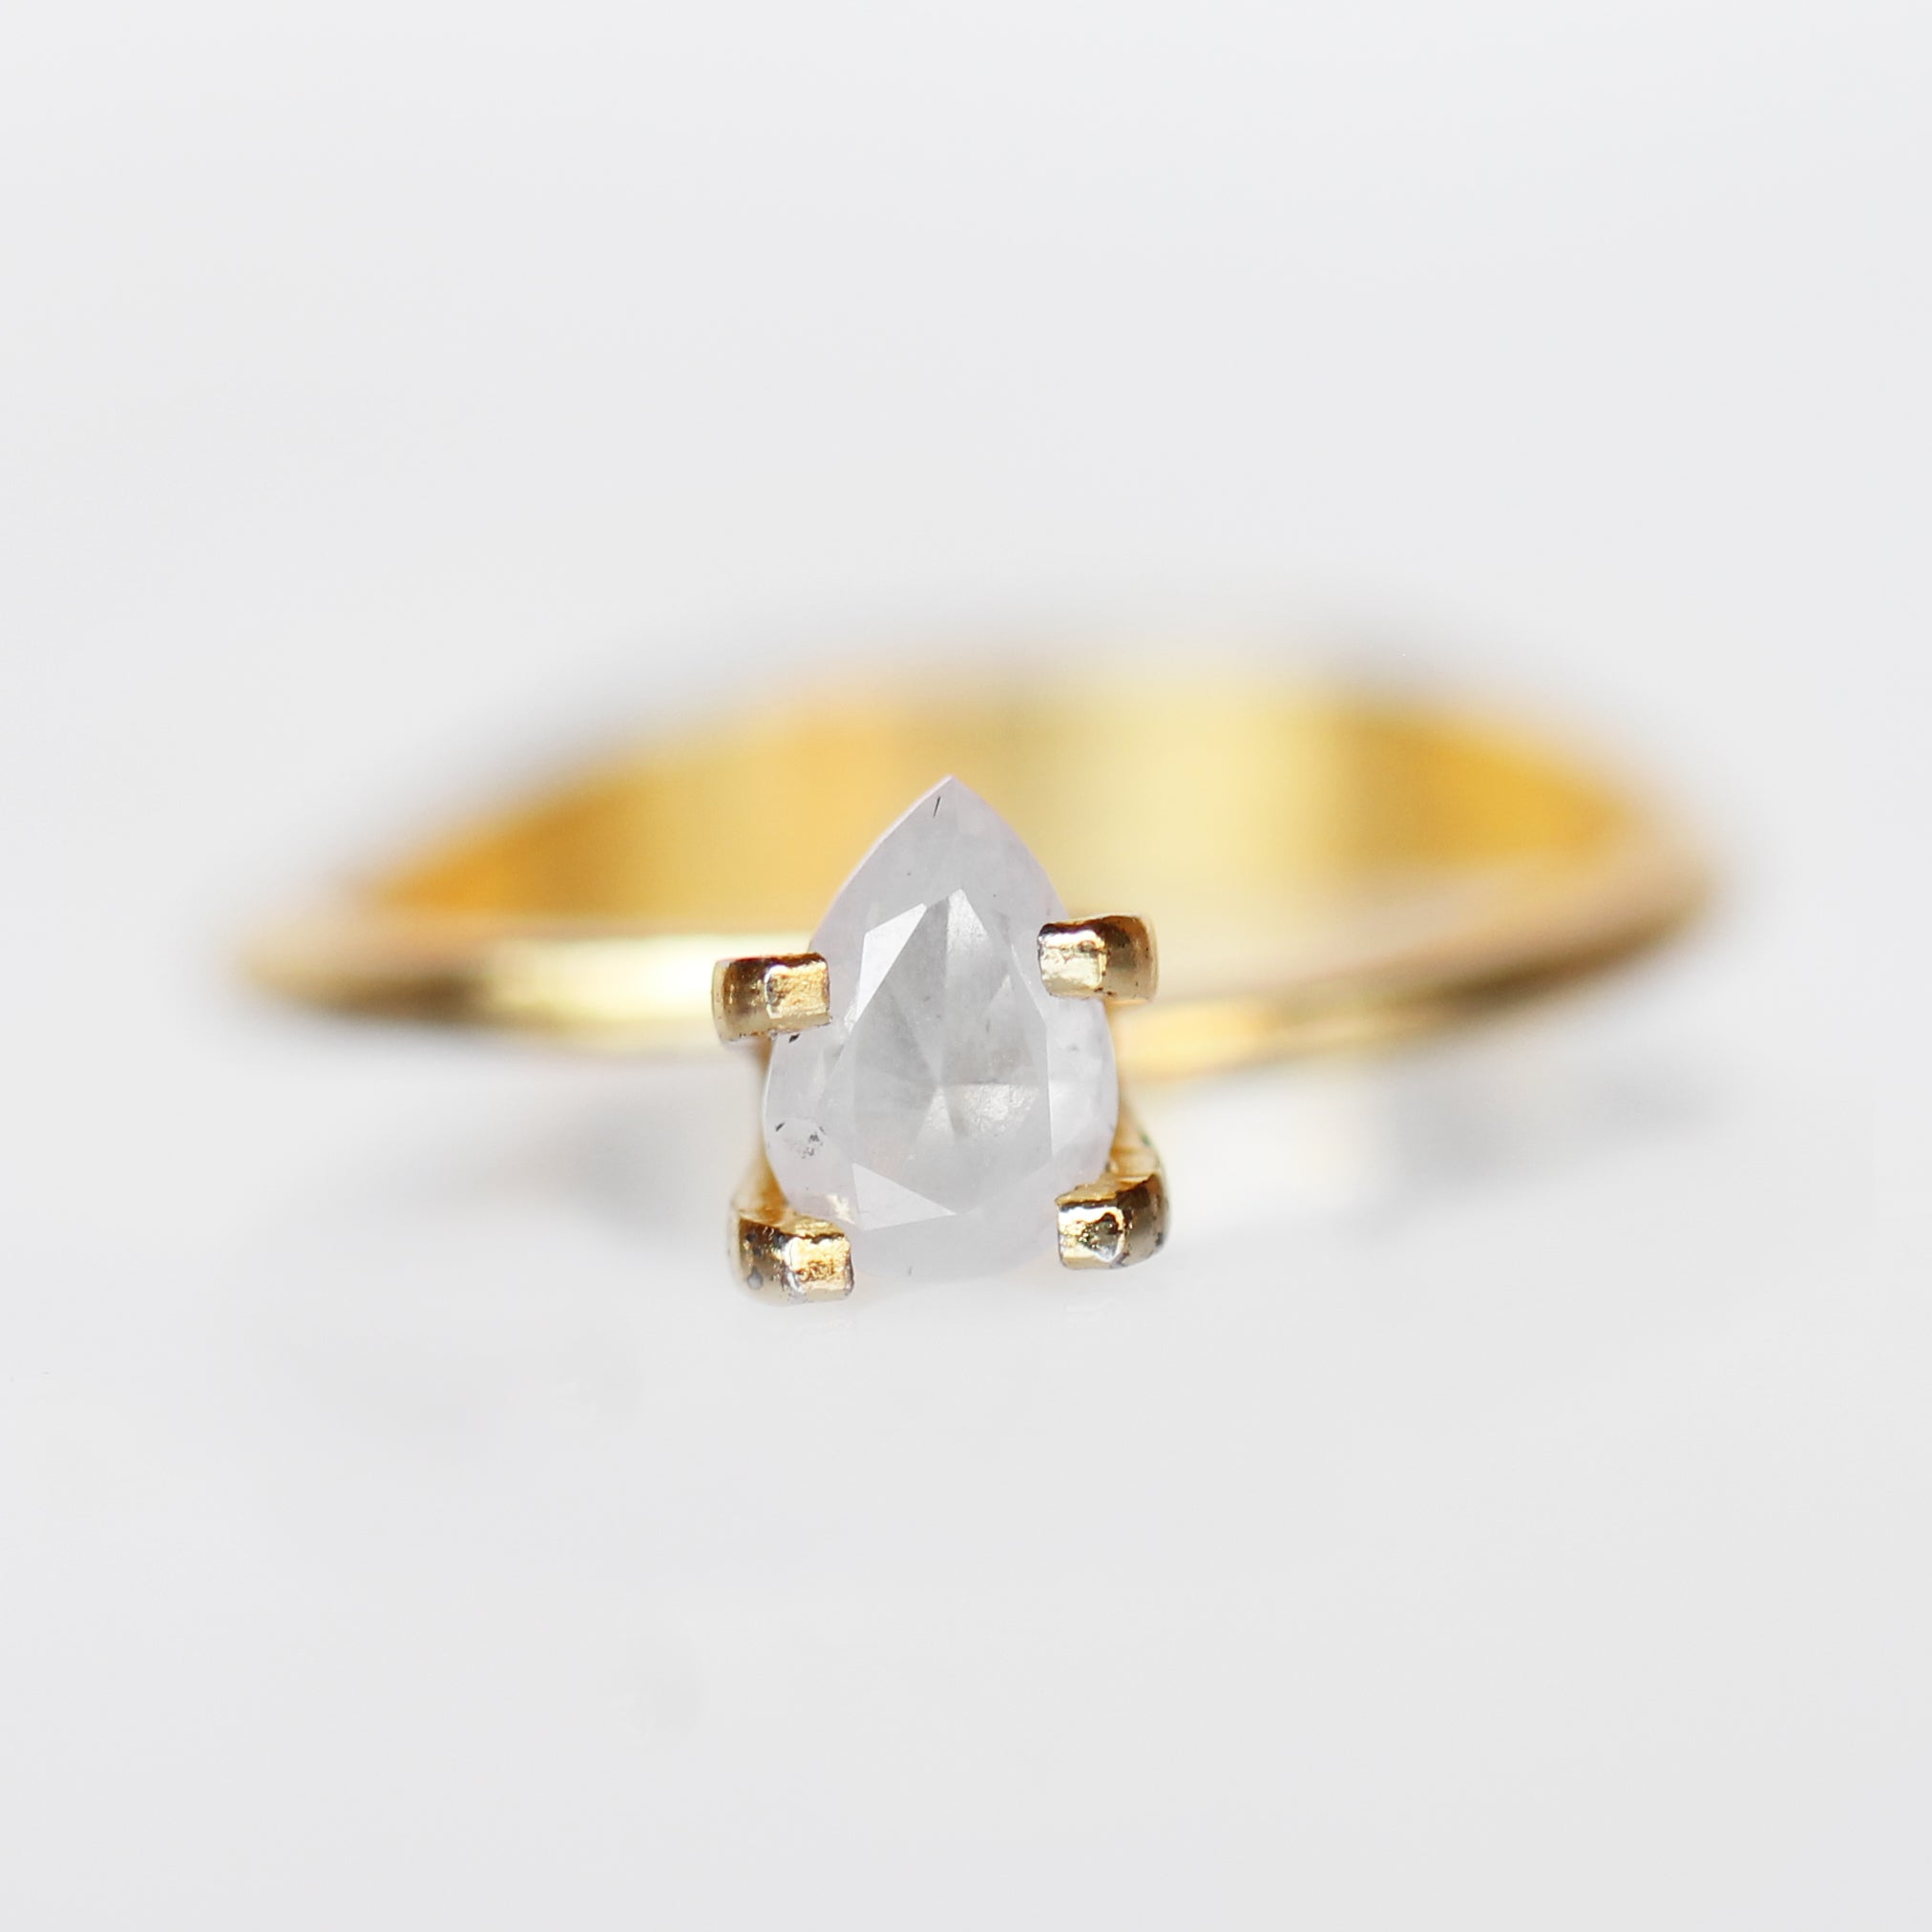 .72 Carat Pear Celestial Diamond-Inventory Code PBWC72 - Midwinter Co. Alternative Bridal Rings and Modern Fine Jewelry